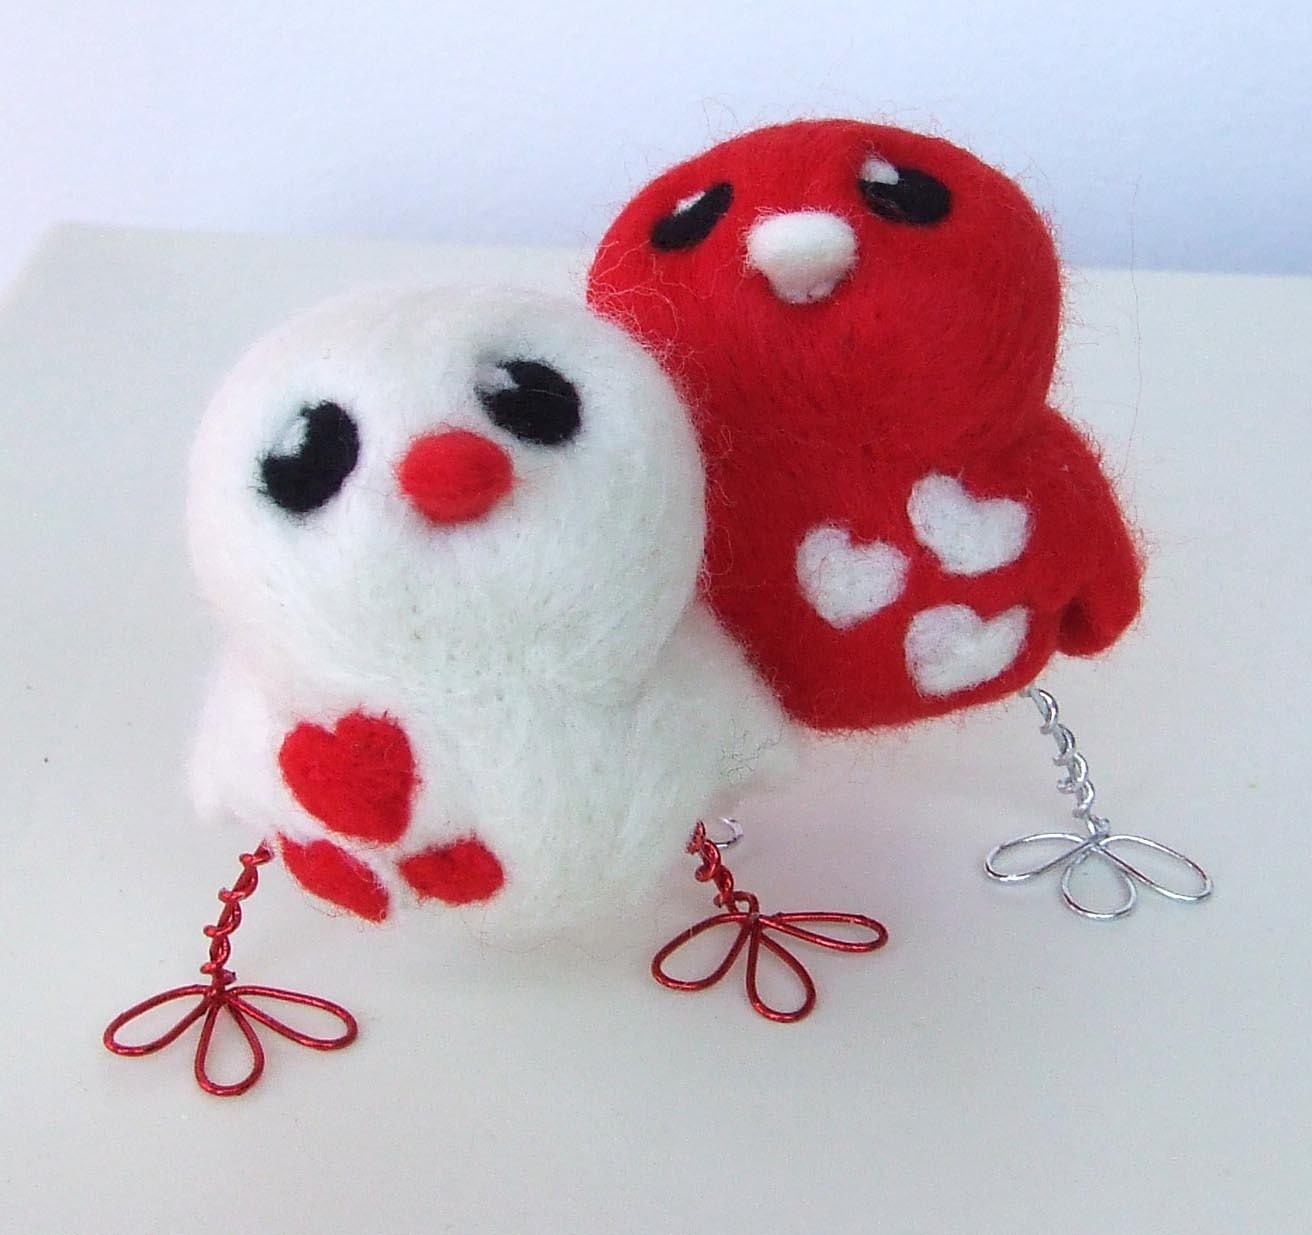 Tweet Pair of Love Birds Red and White Opposites Wedding Cake topper